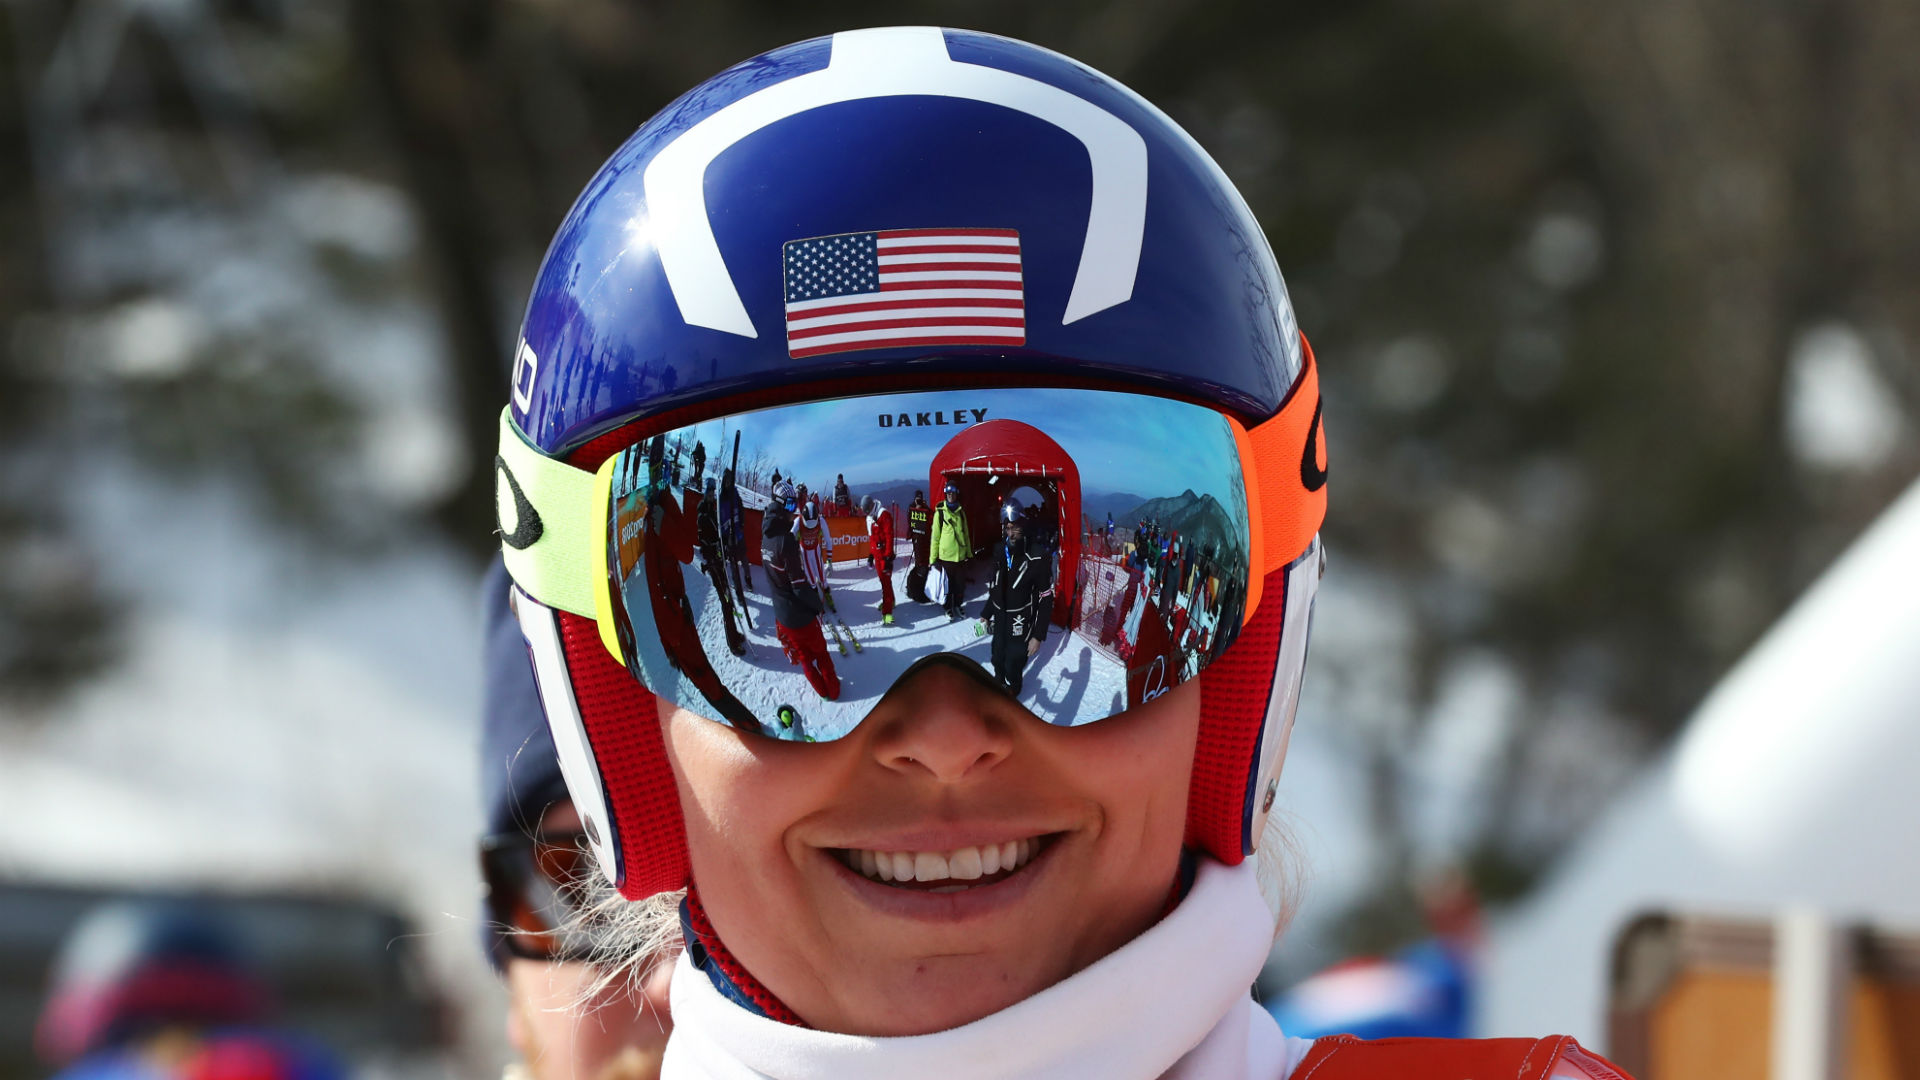 Alpine combined: Vonn-Shiffrin, trajectories cross